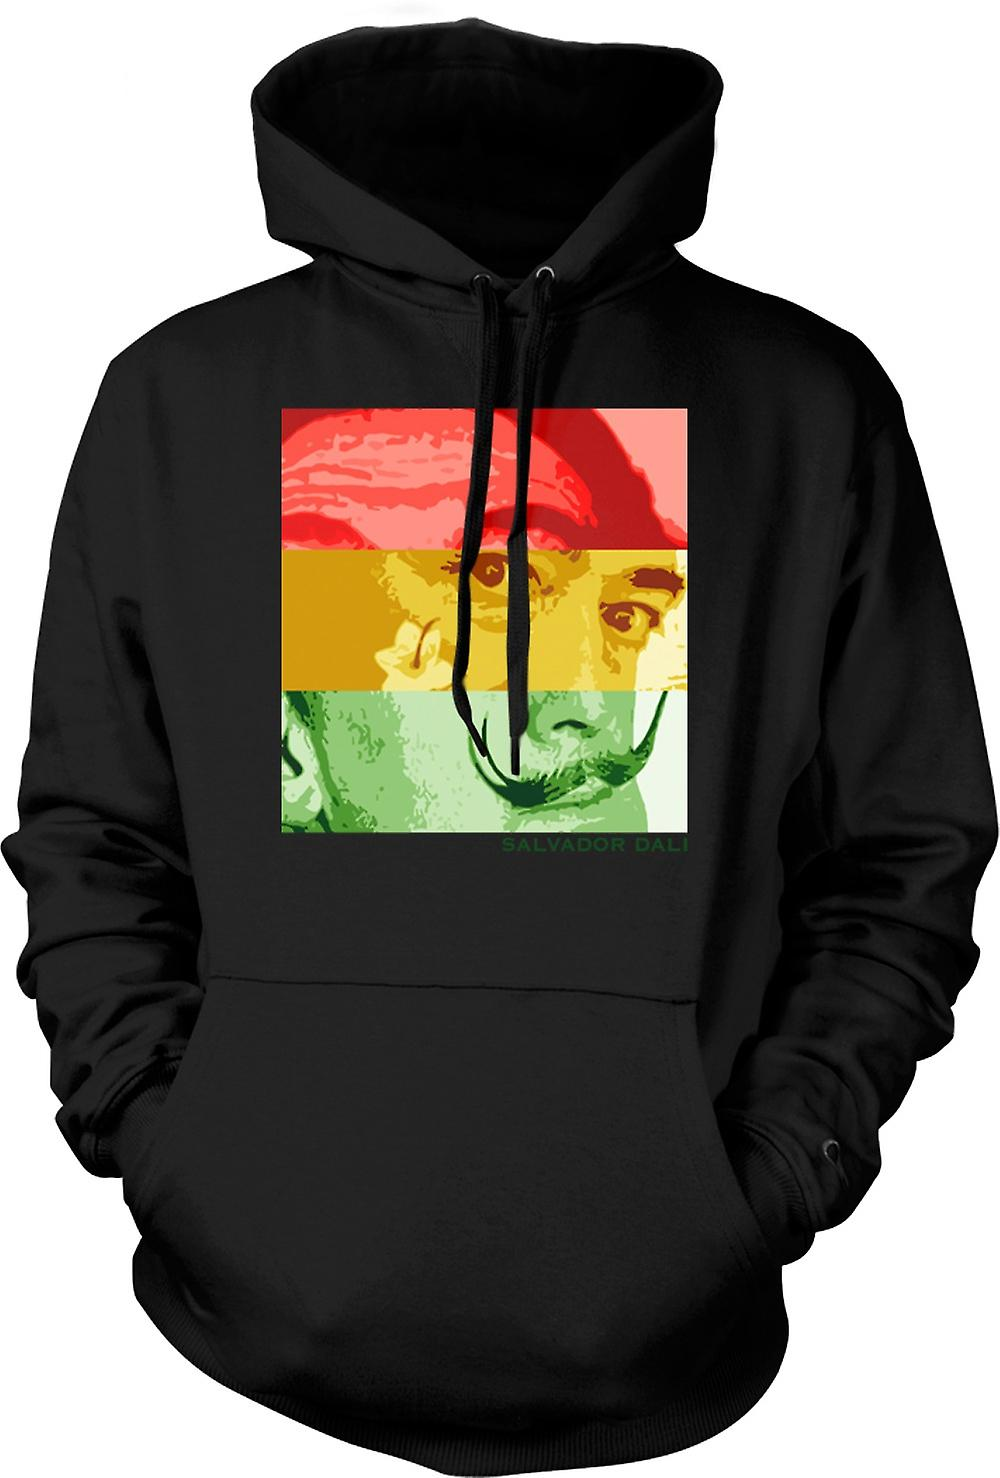 Mens Hoodie - Salvador Dali - Pop Art - artista surreale